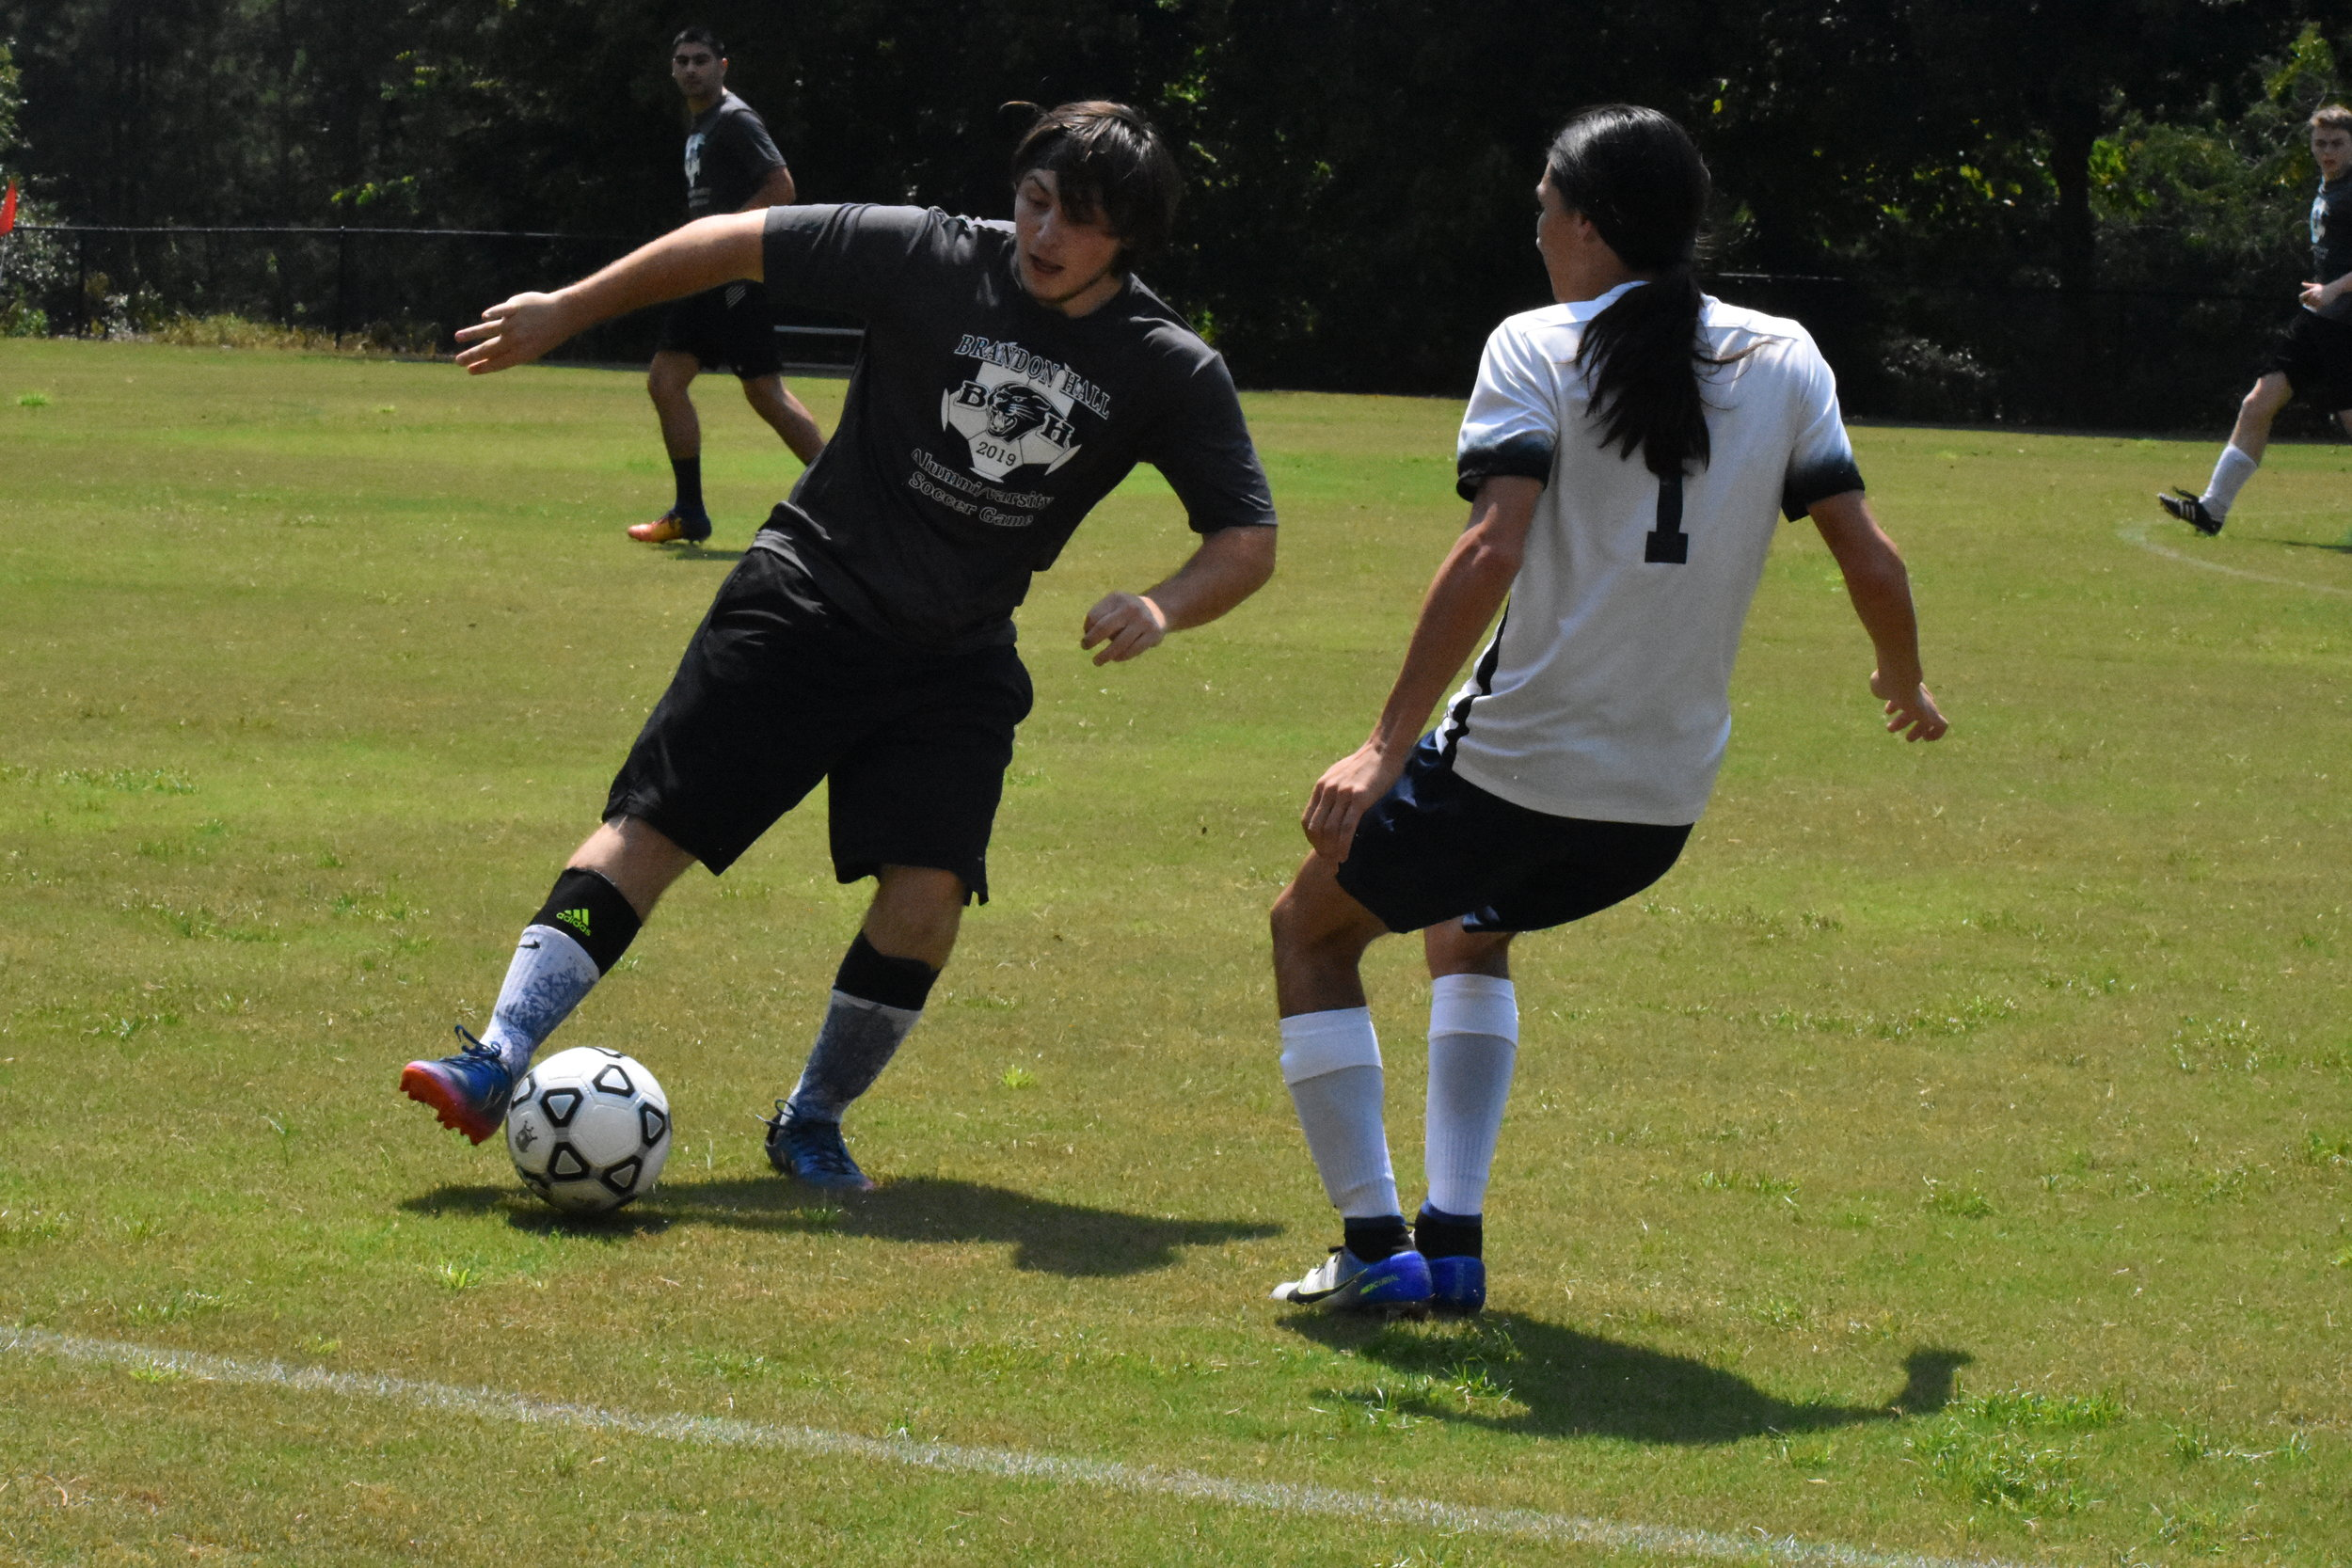 Alumni Soccer Game - On Orientation Weekend, a battles for the ages is held - the Varsity Soccer team puts their training to the test in a scrimmage game against a team of alumni and faculty.